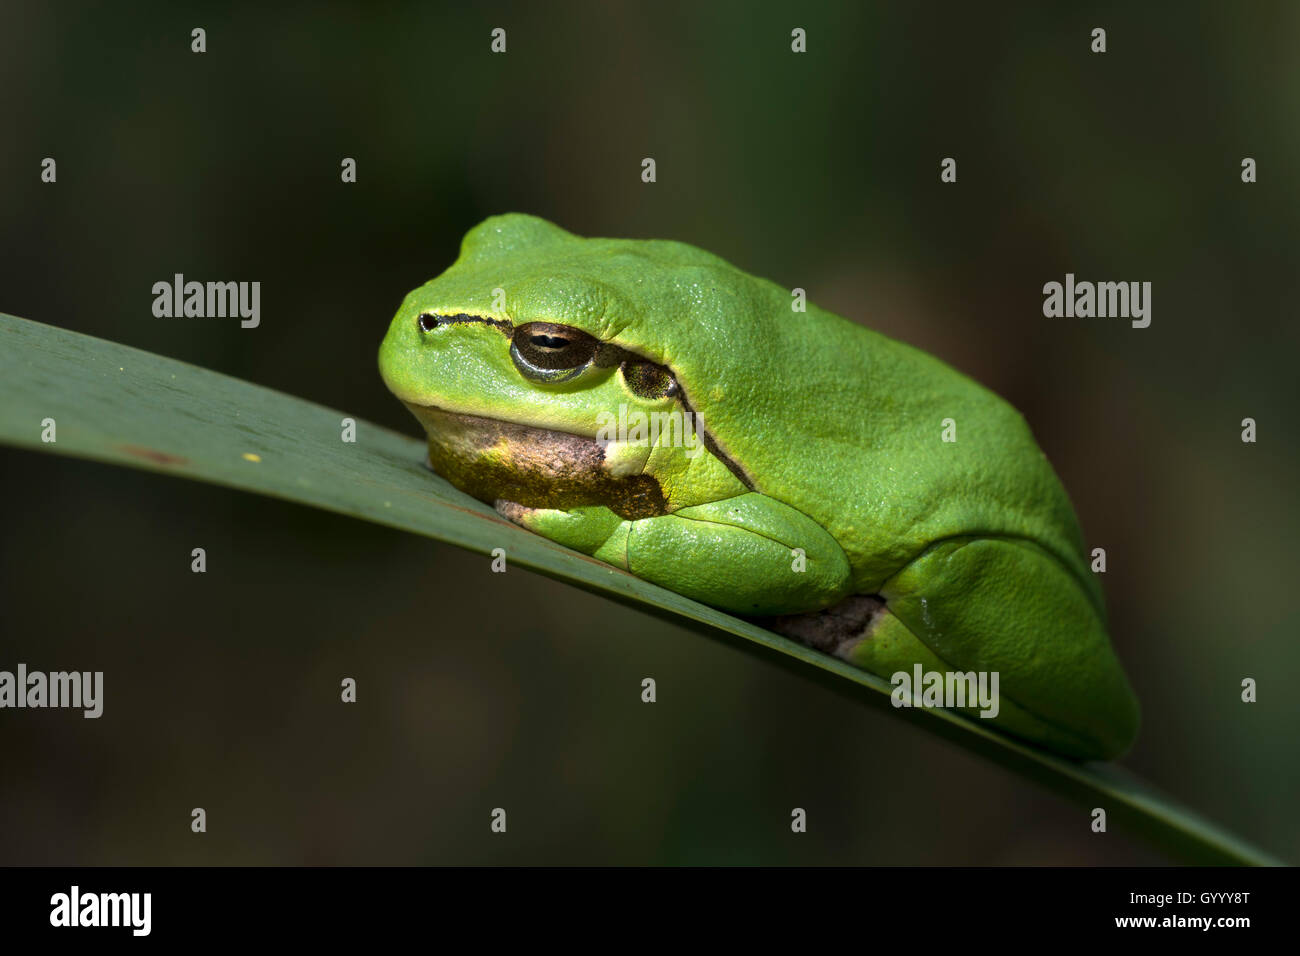 European tree frog (Hyla arborea) sitting on leaf, Burgenland, Austria - Stock Image